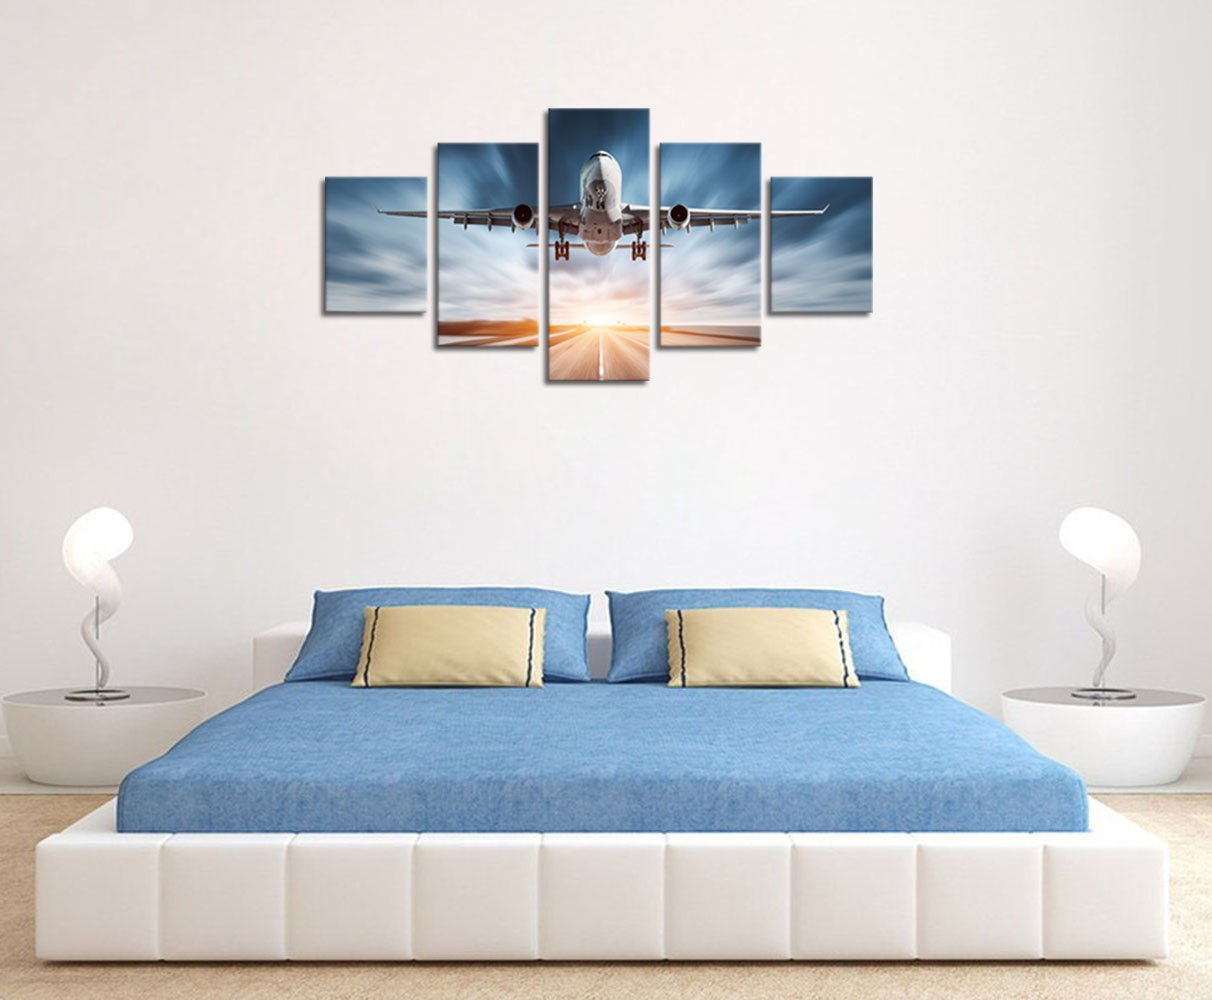 Amazon.com: klvos-large moderno lona decoración de pared ...